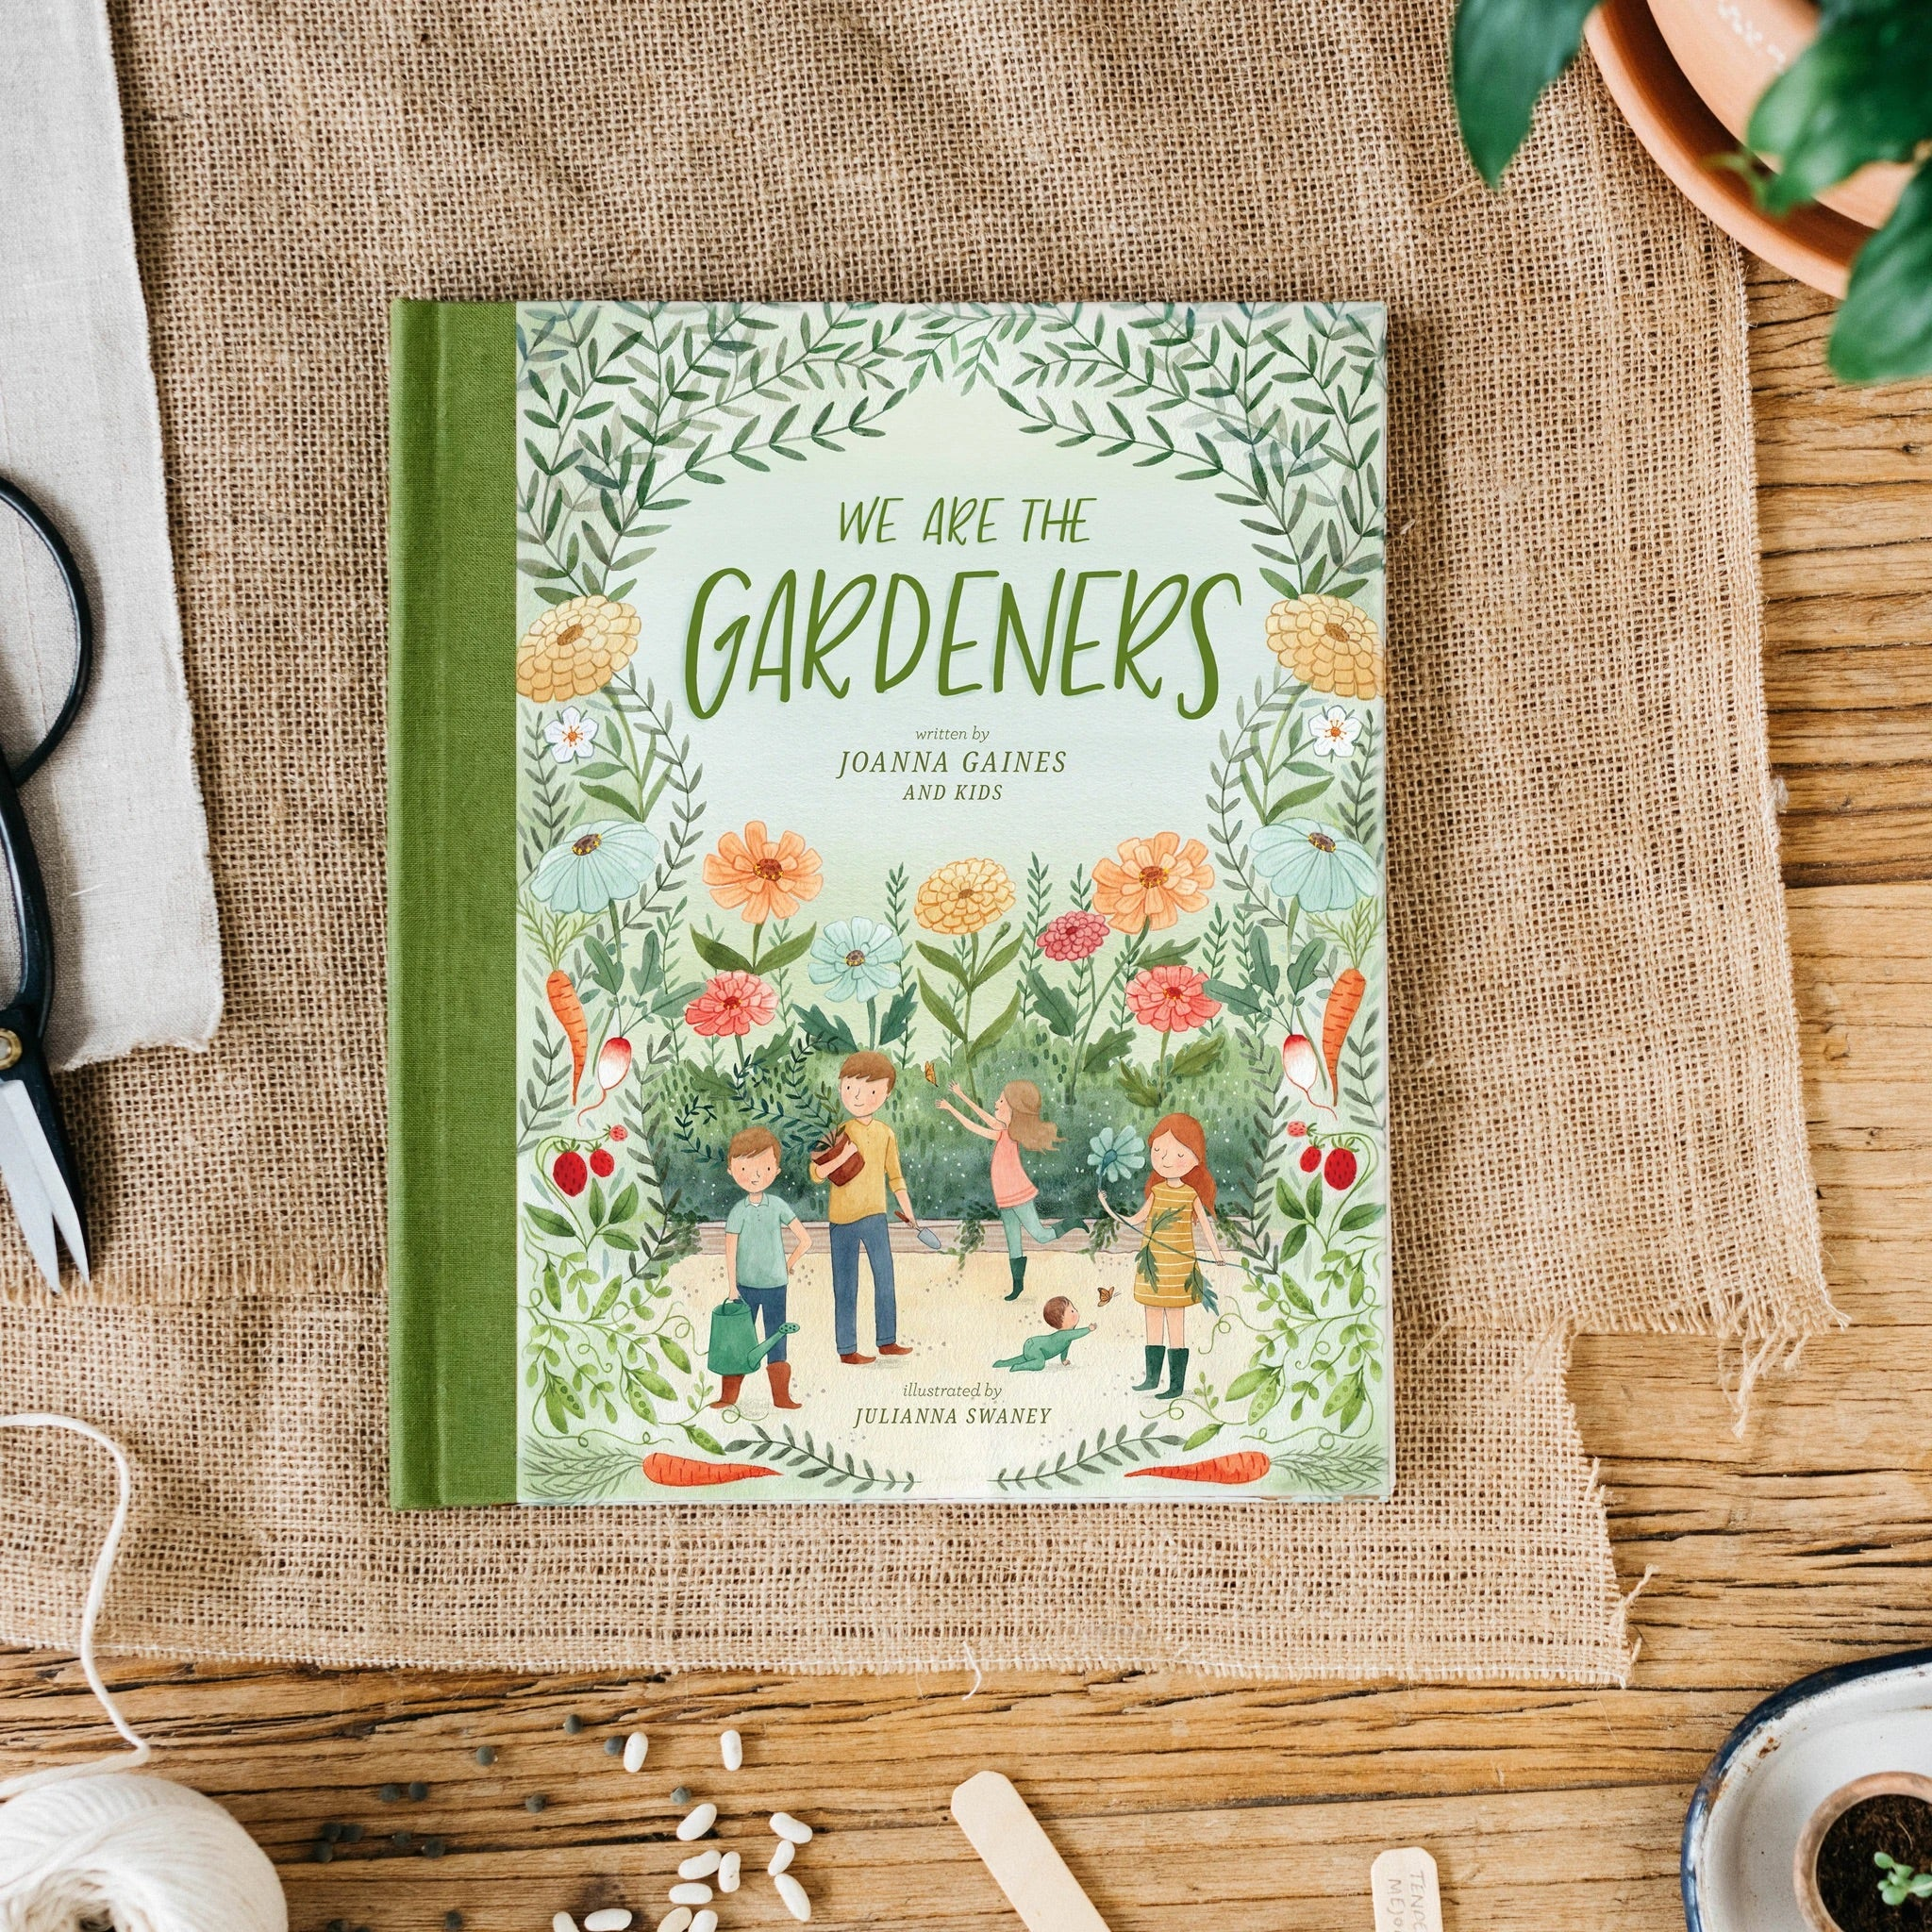 We Are The Gardeners by Joanna Gaines & Julianna Swaney